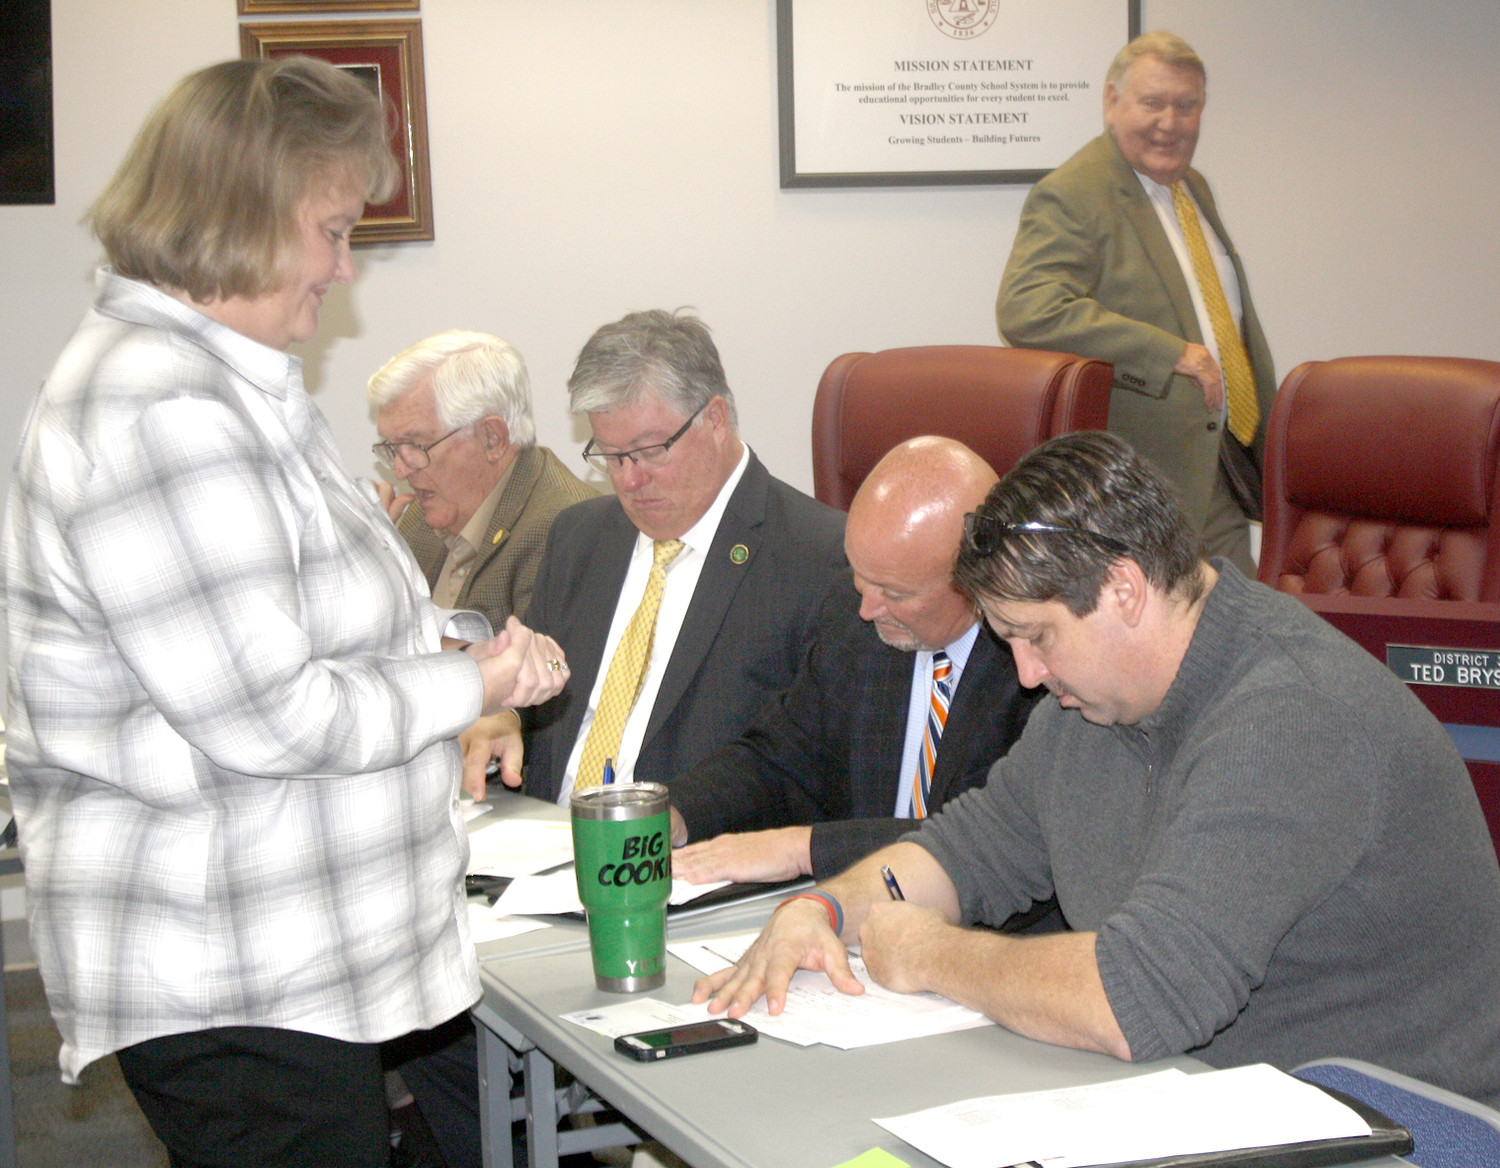 BRADLEY COUNTY COURT Clerk Donna Simpson, left, talks with a group of commissioners before Monday's meeting in the school system's meeting room. Commission members include, seated  from left, Tom Crye, Milan Blake, Johnny Mull and Jeff Yarber, with Commission Chairman Louie Alford standing in back.